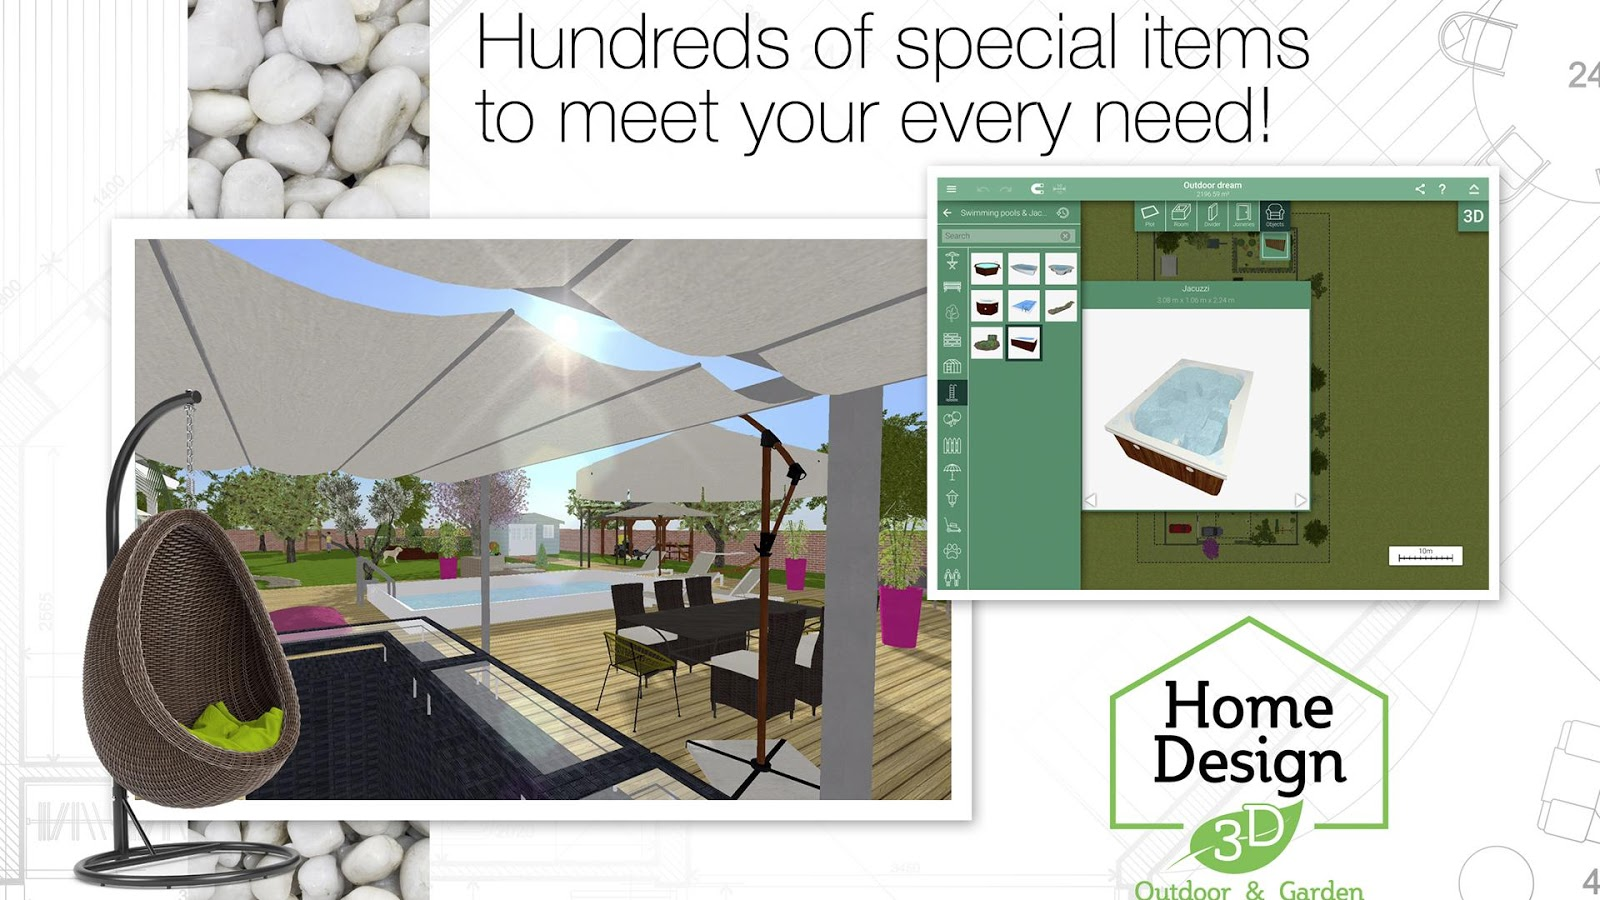 Home Design D OutdoorGarden Android Apps On Google Play - Home designer 3d